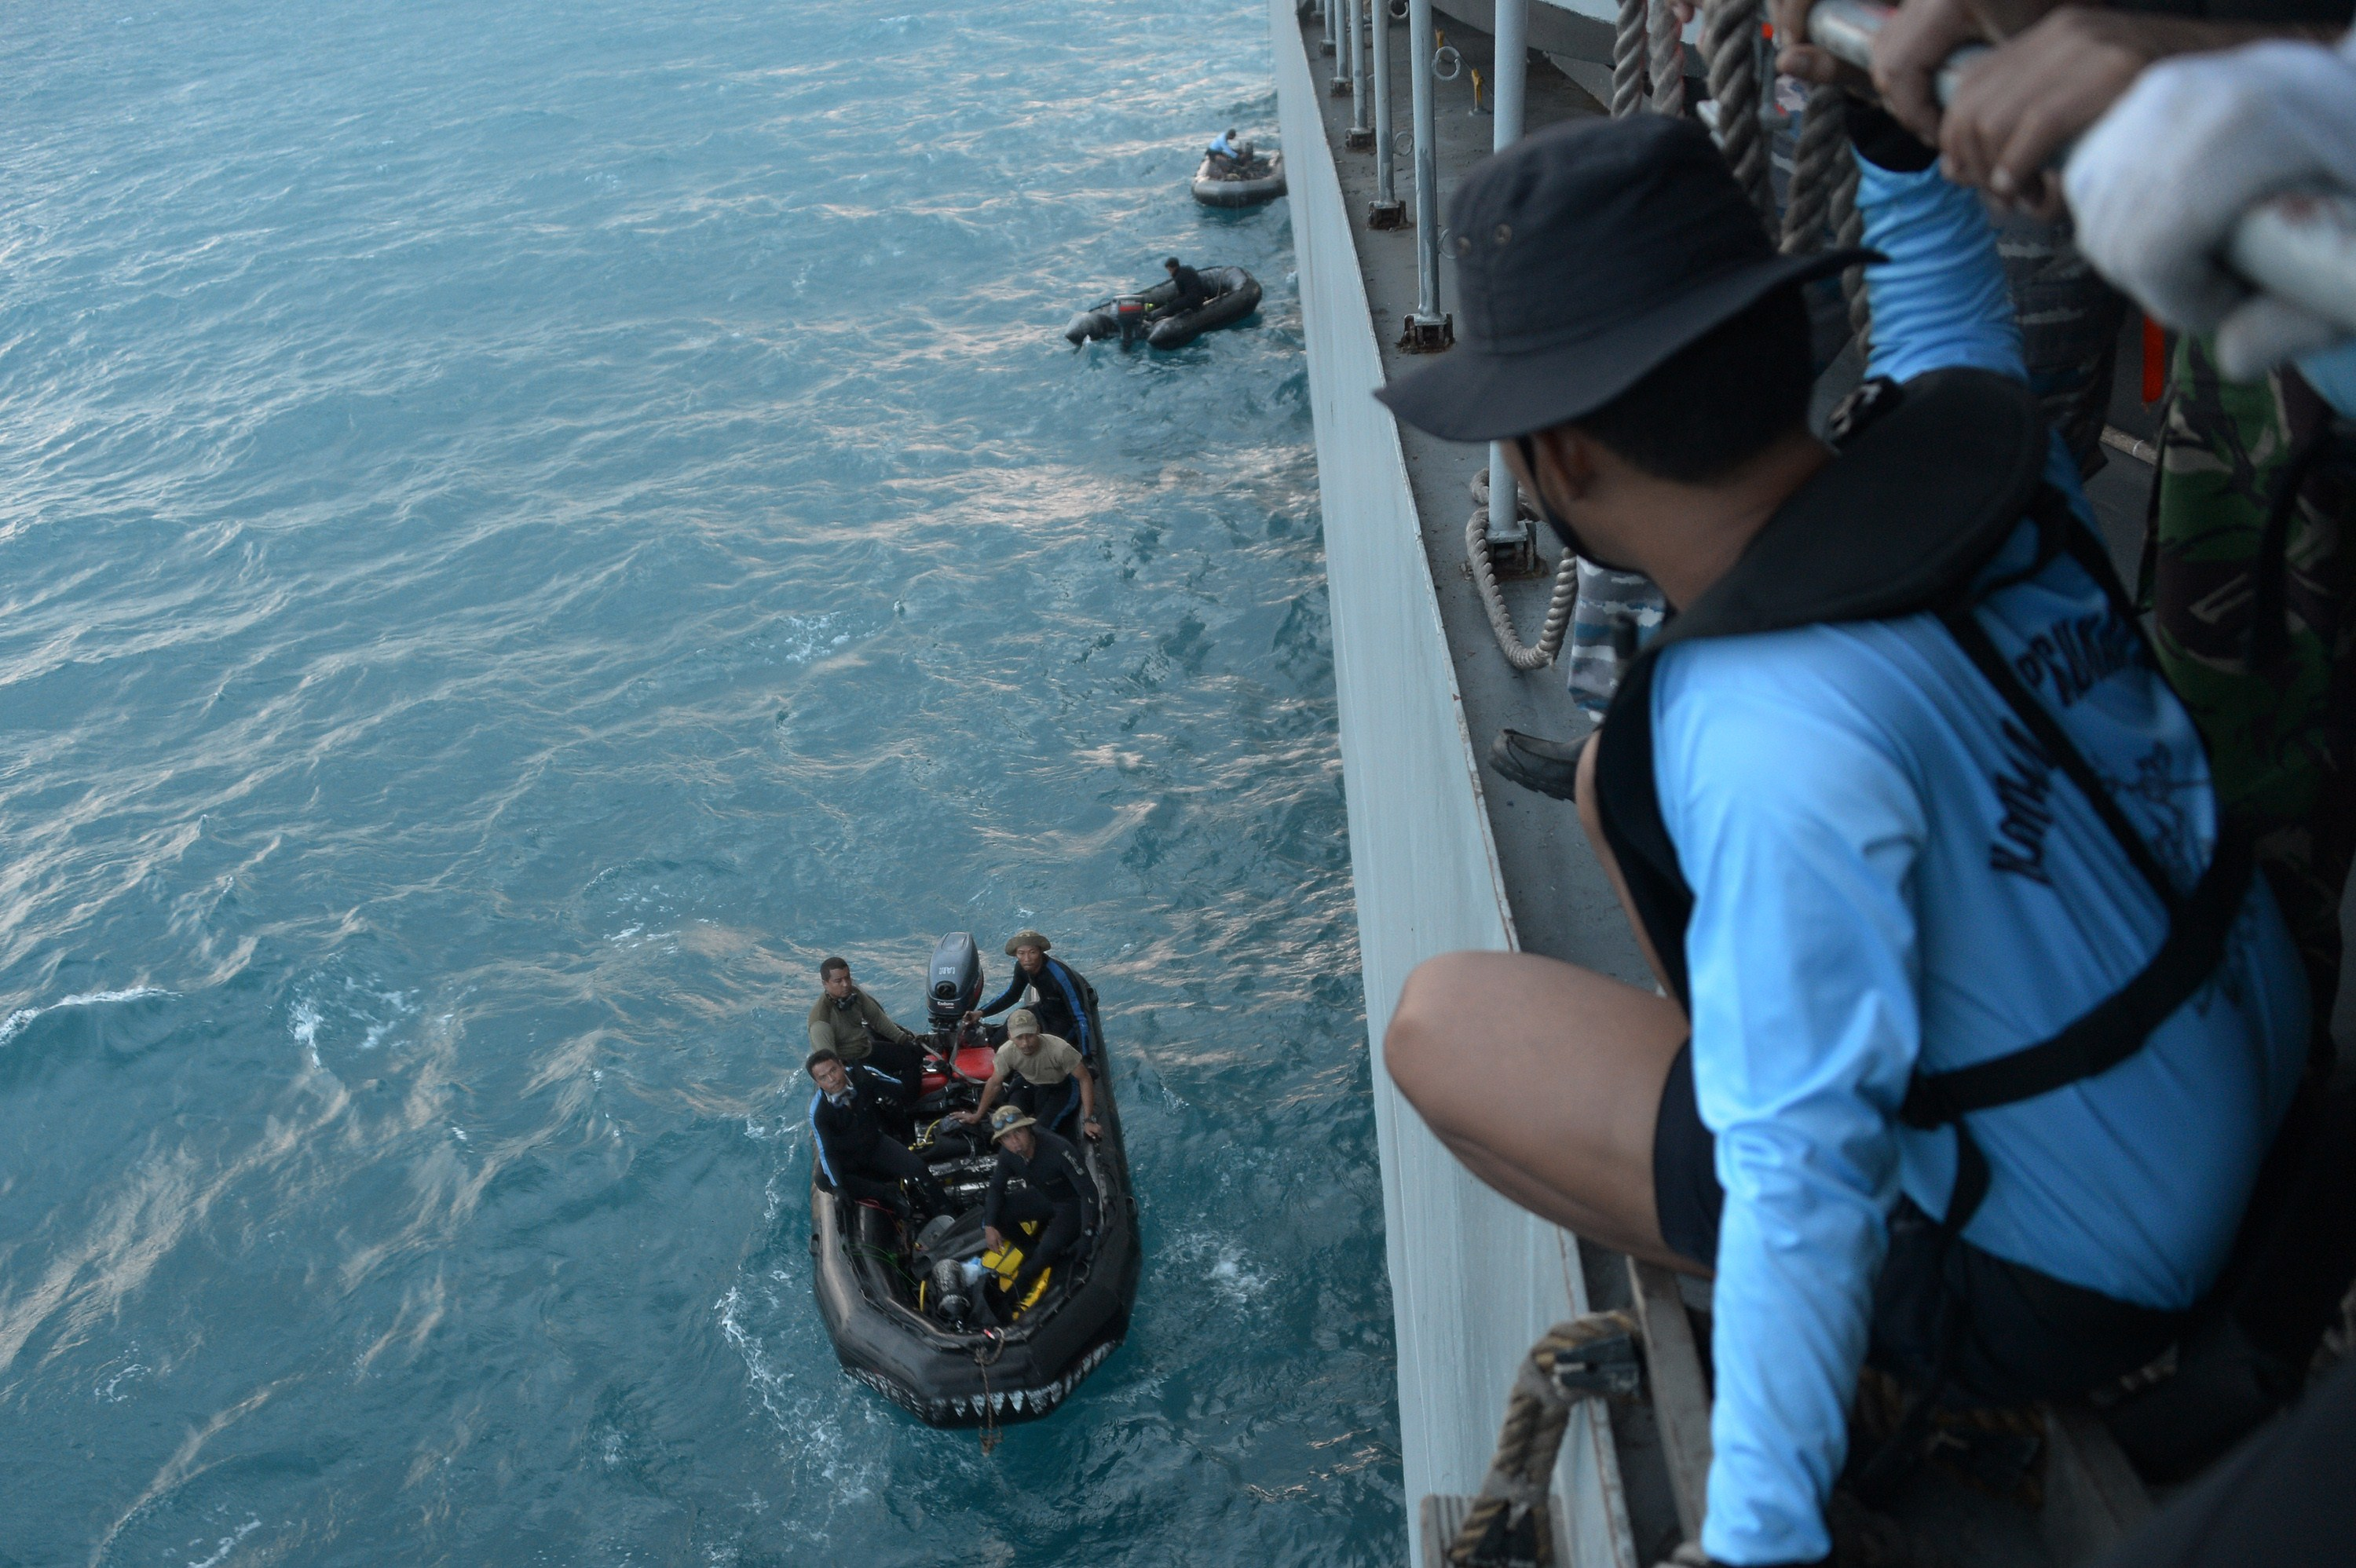 Indonesian navy divers, left, prepare to depart from the vessel KRI Banda Aceh to conduct operations to lift the tail of AirAsia Flight QZ 8501 in the Java Sea on Jan. 9, 2015